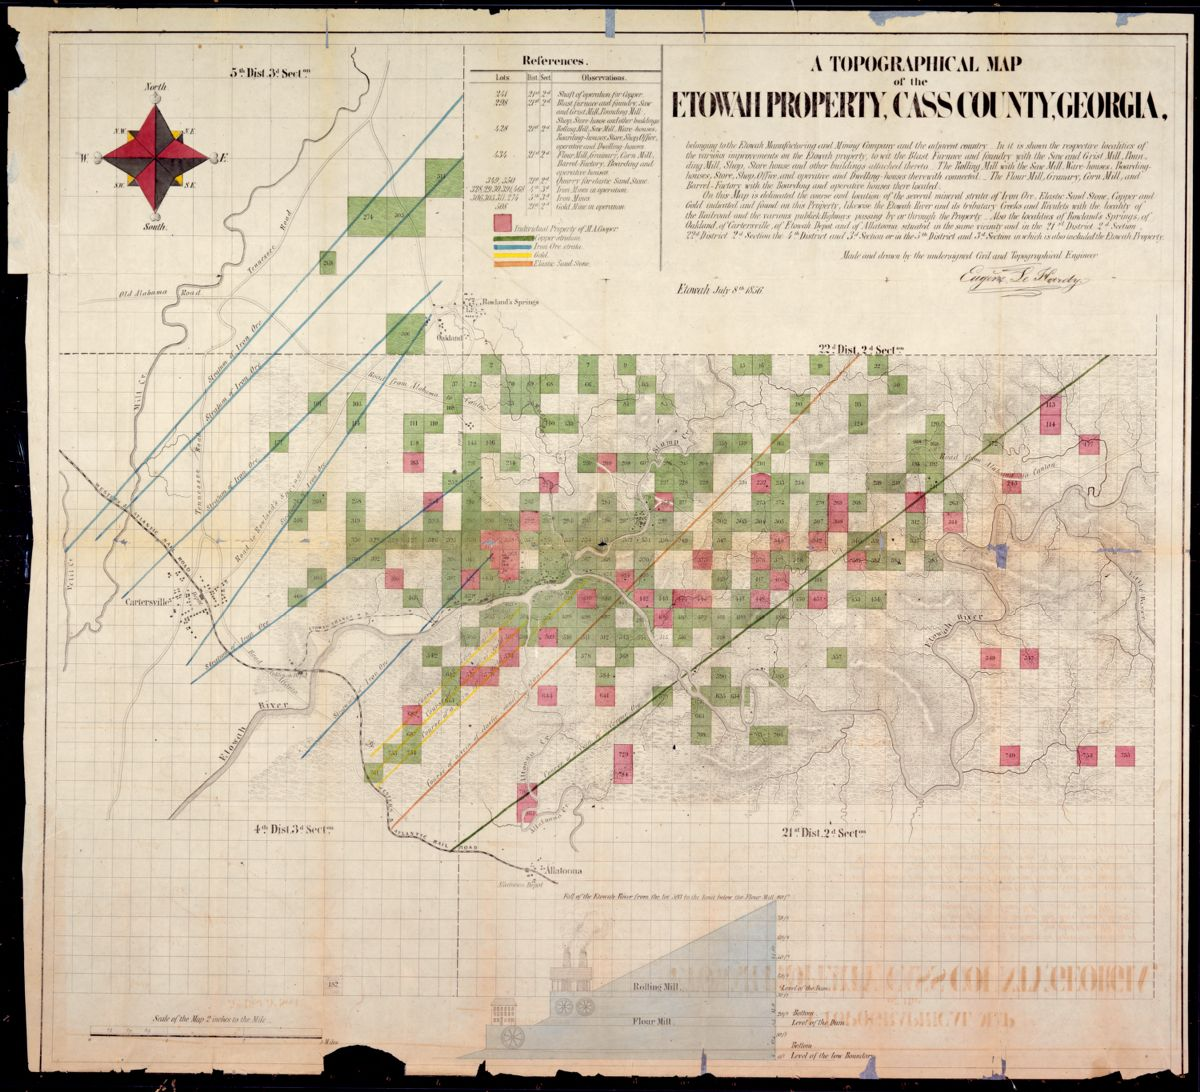 A topographical map of the Etowah property, Cass County, Georgia